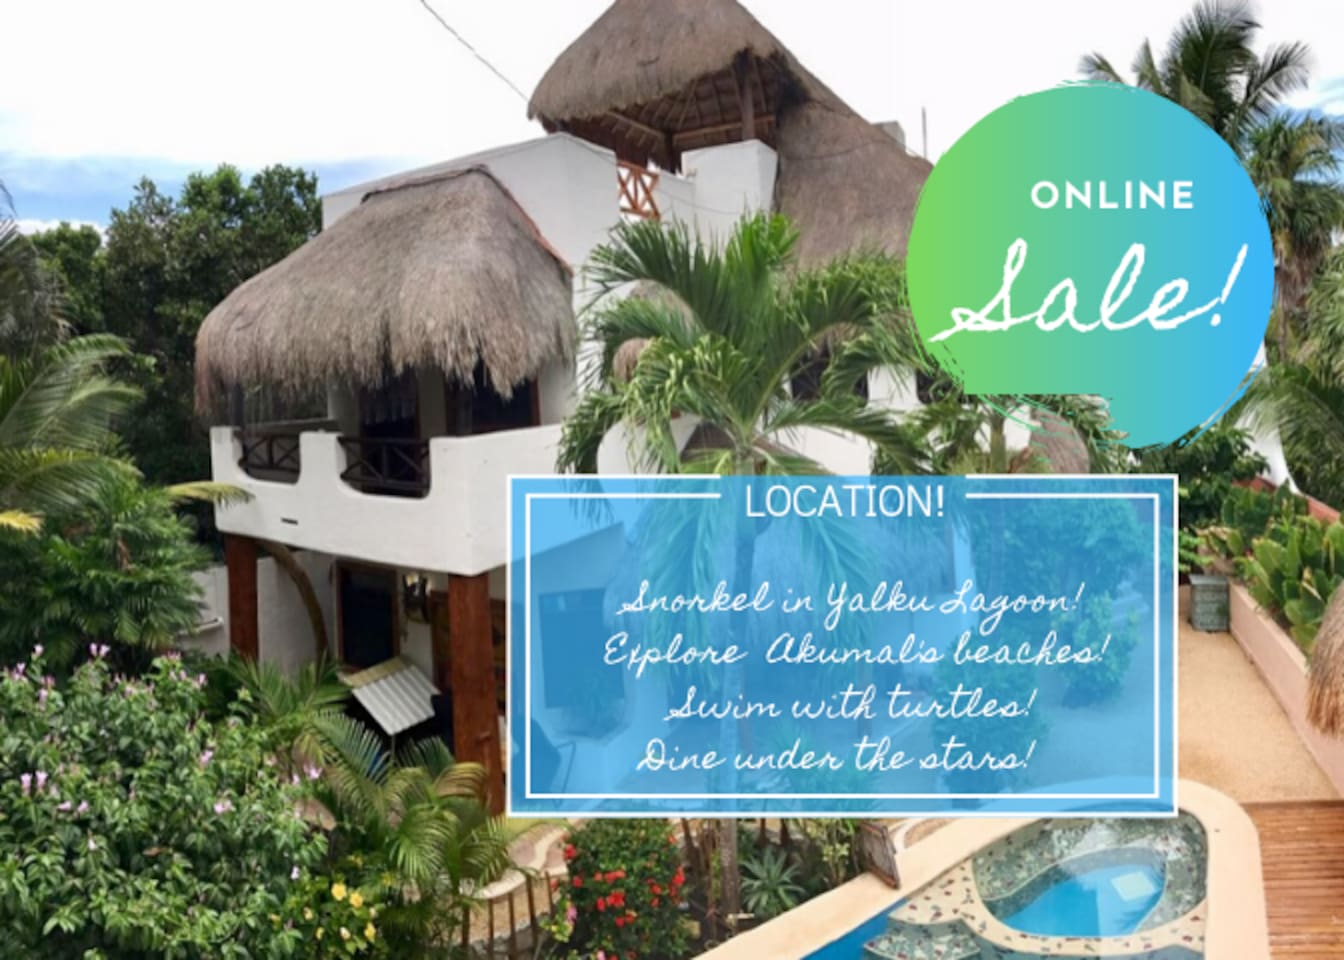 Casa Galeria has a main house with two bedrooms and two baths. Two lovely studio units are adjacent to the main house with private entrances. The main house can be rented alone or with one or more of the studio units. Please inquire about our sale!